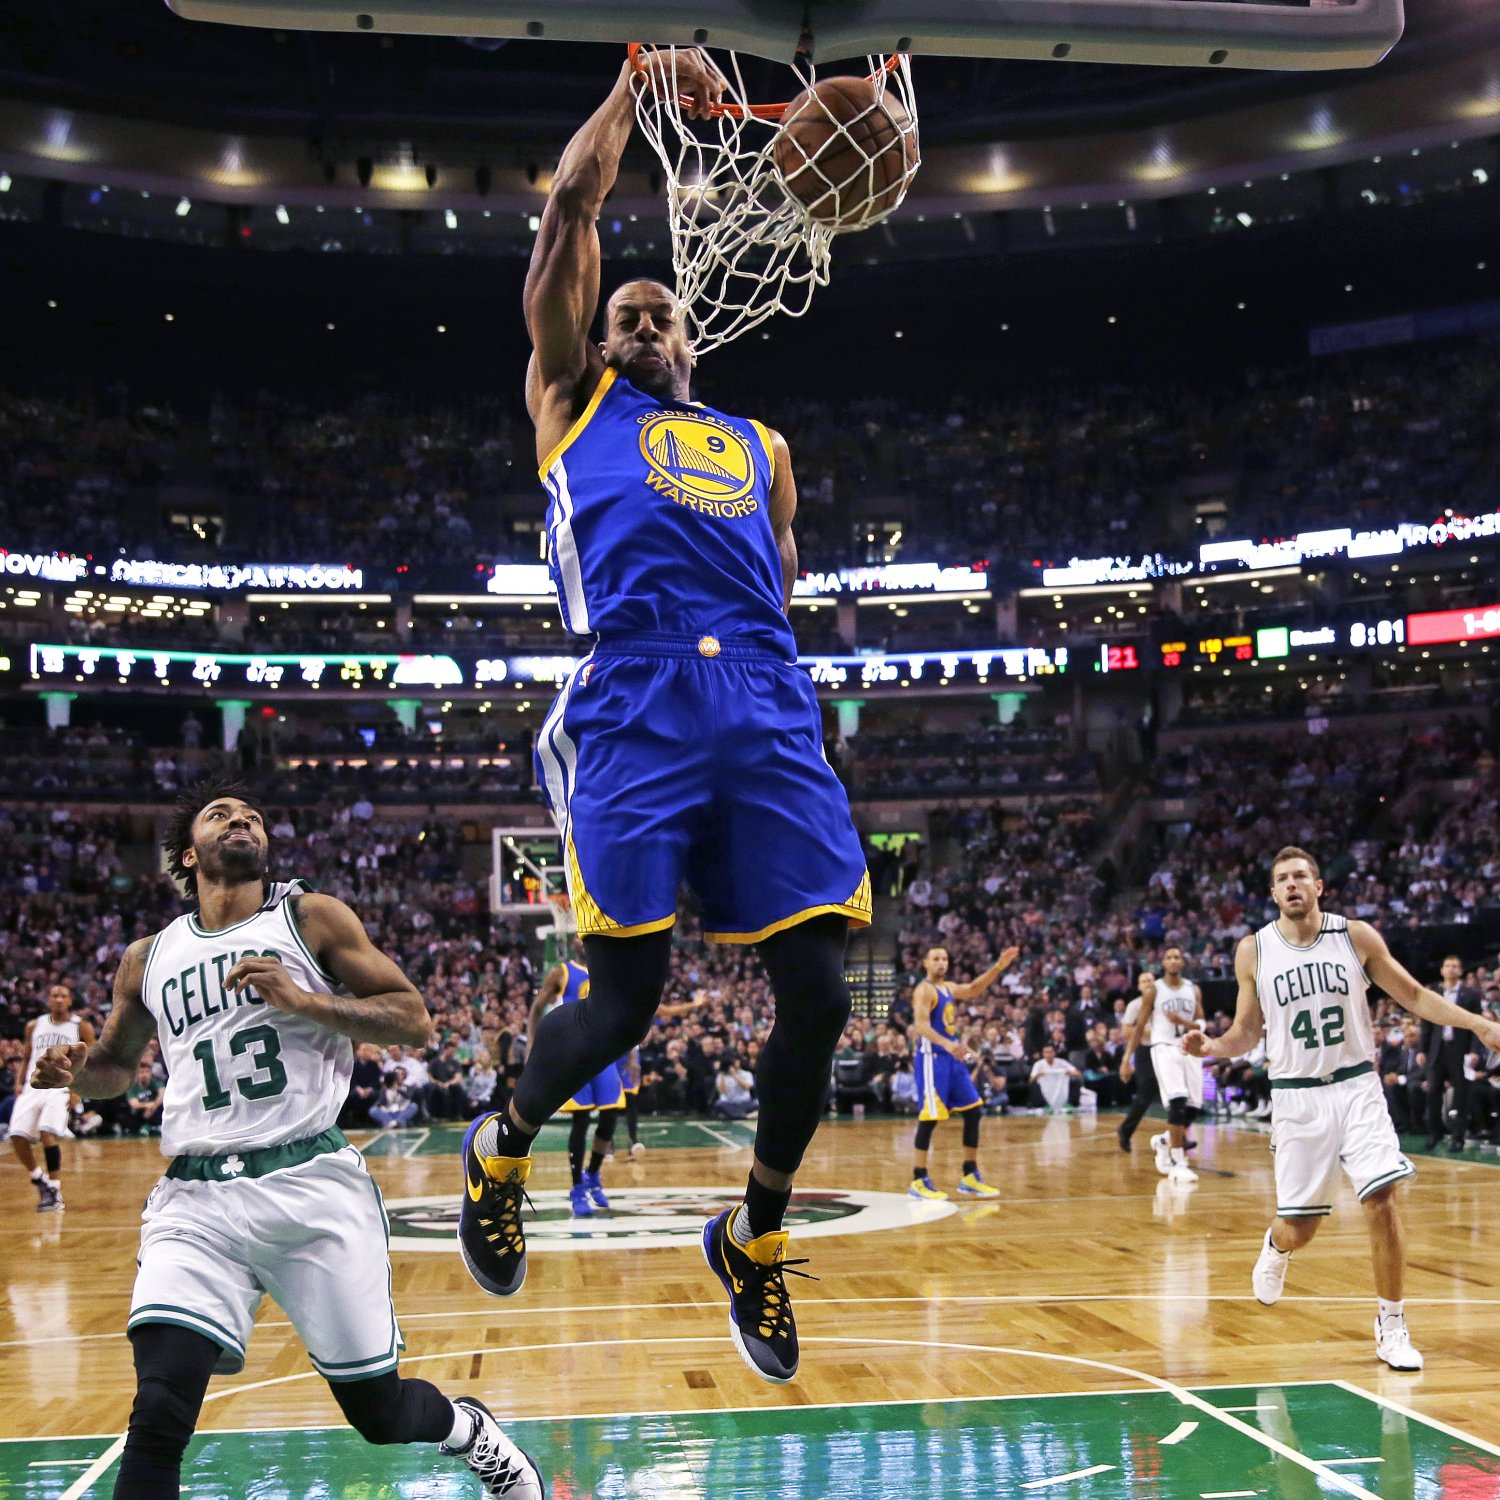 Celtic Score: Warriors Vs. Celtics: Score, Highlights And Reaction From